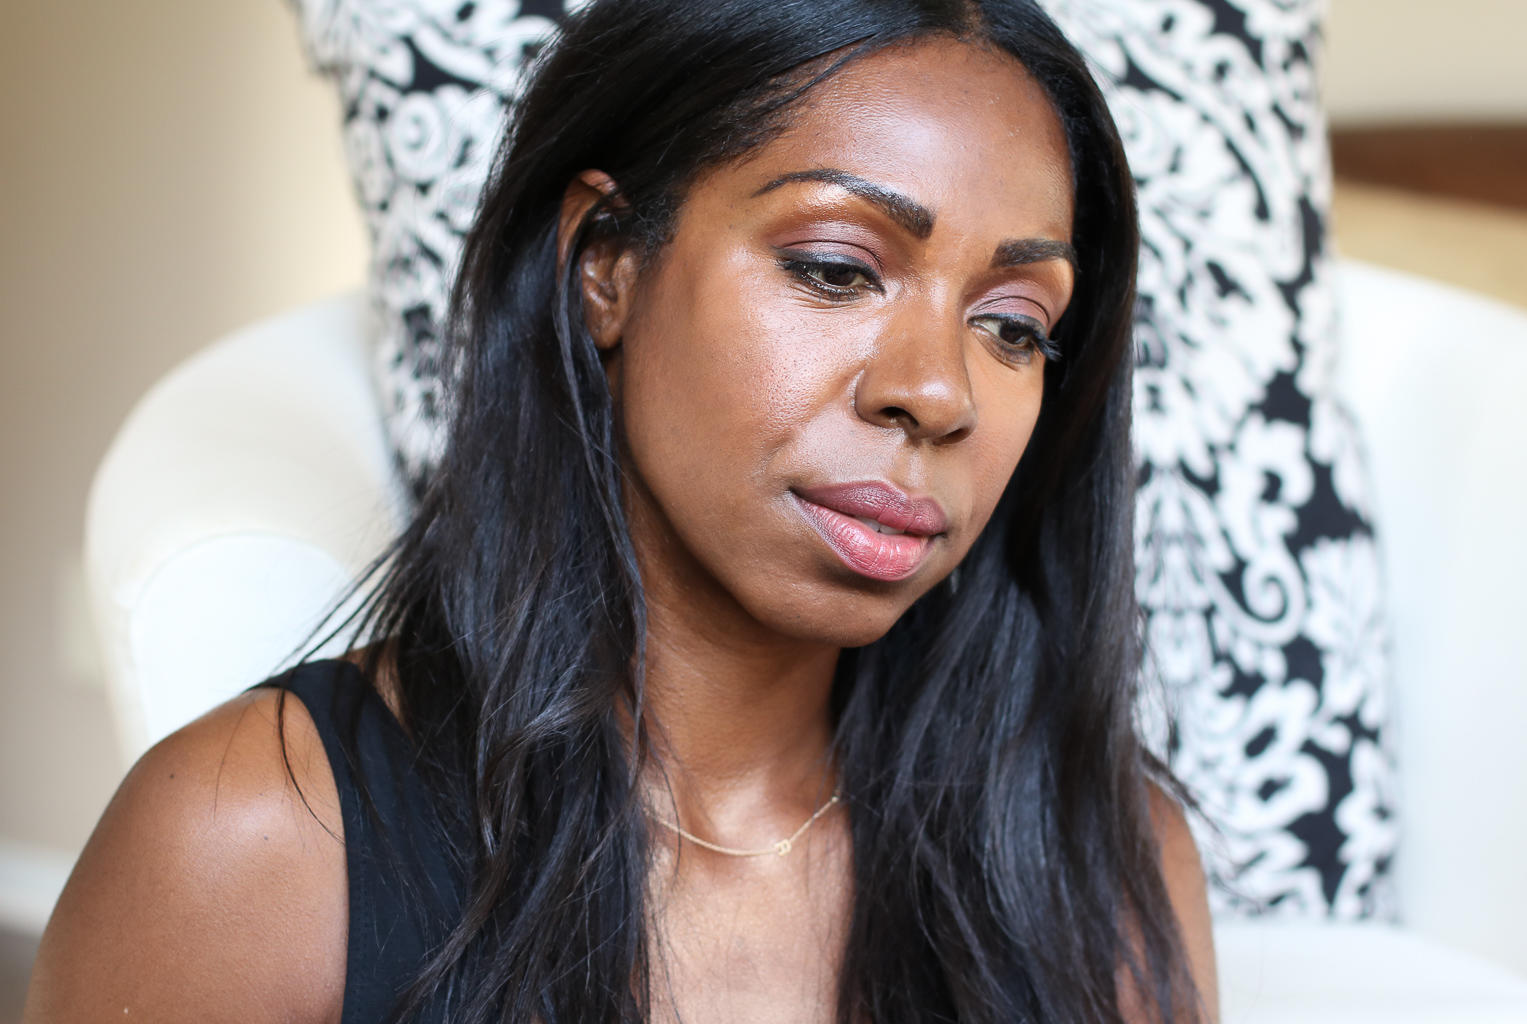 I Got Dermal Fillers And This is What Happened - Belotero at Oxygen MediSpa | Style Domination by Dominique Baker